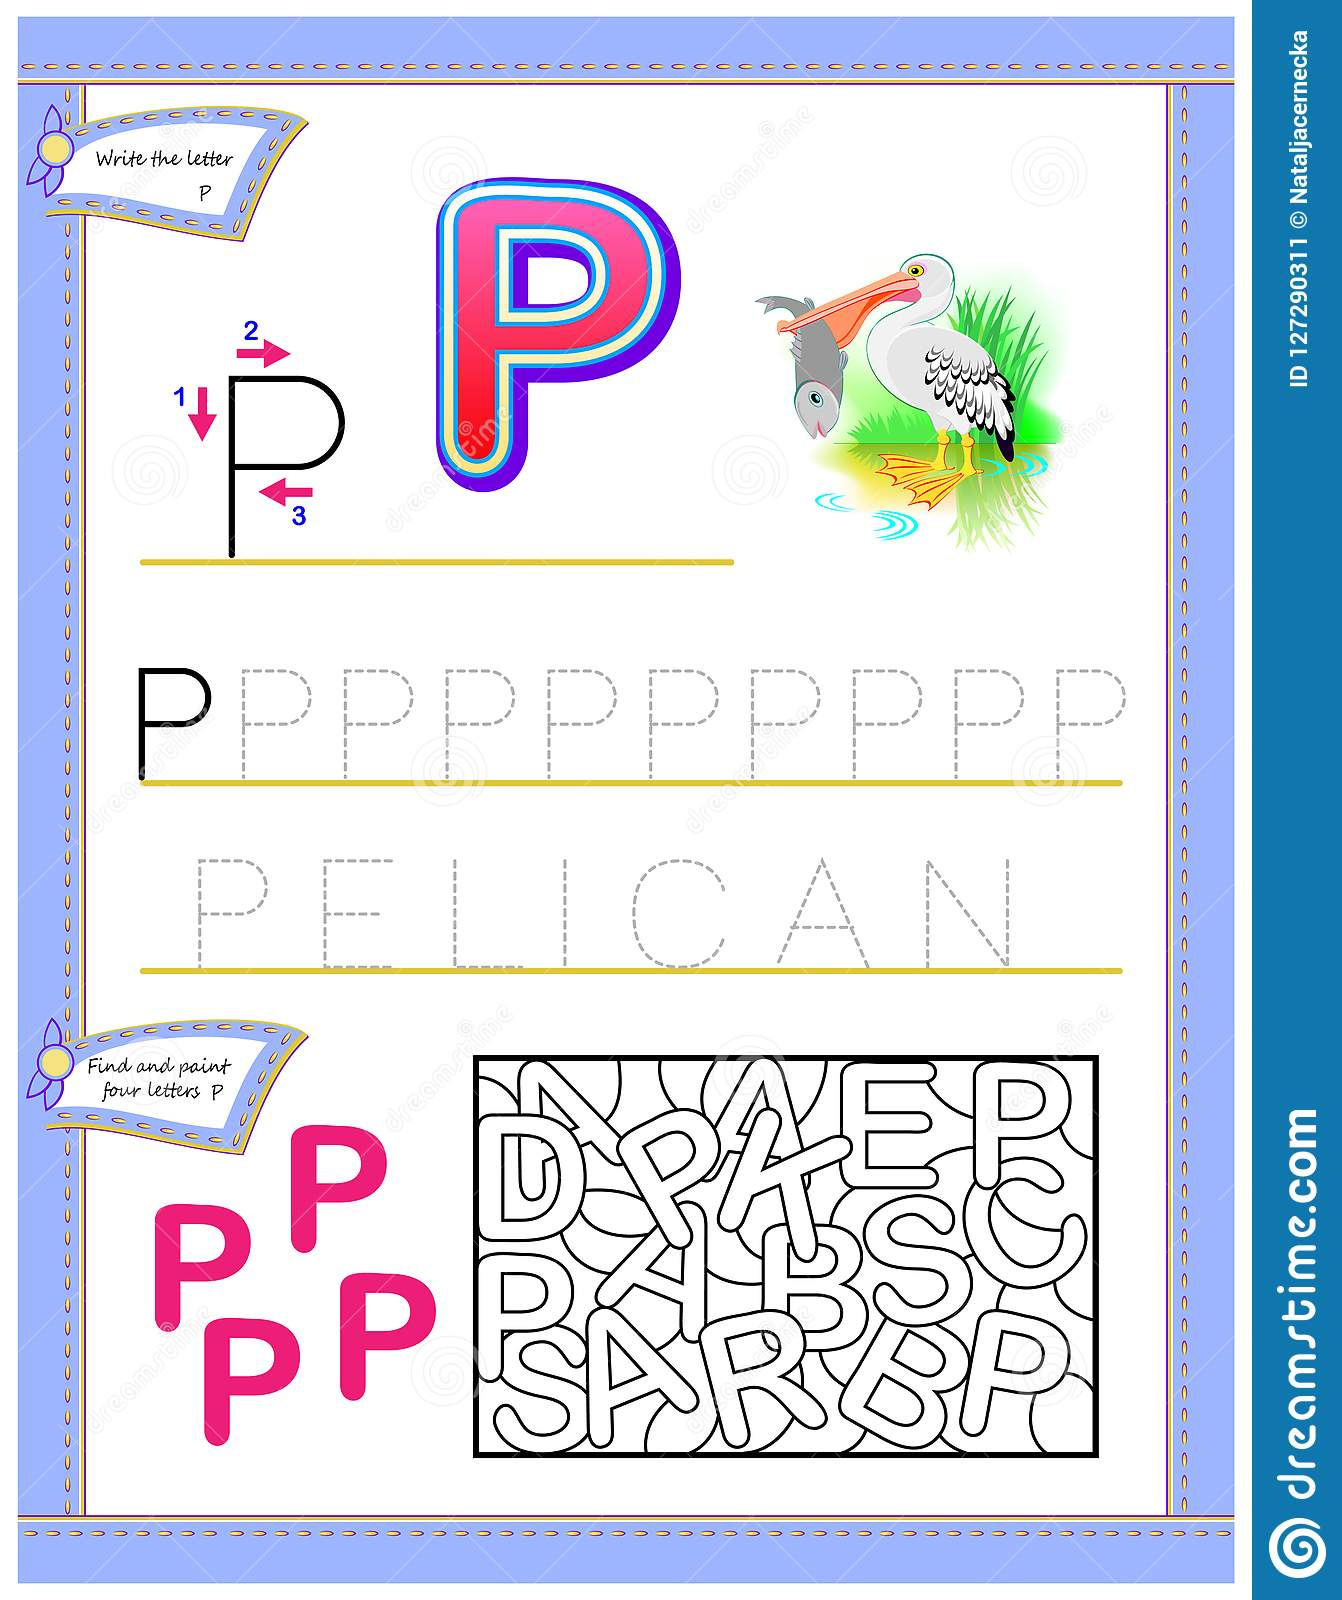 Worksheet For Kids With Letter P For Study English